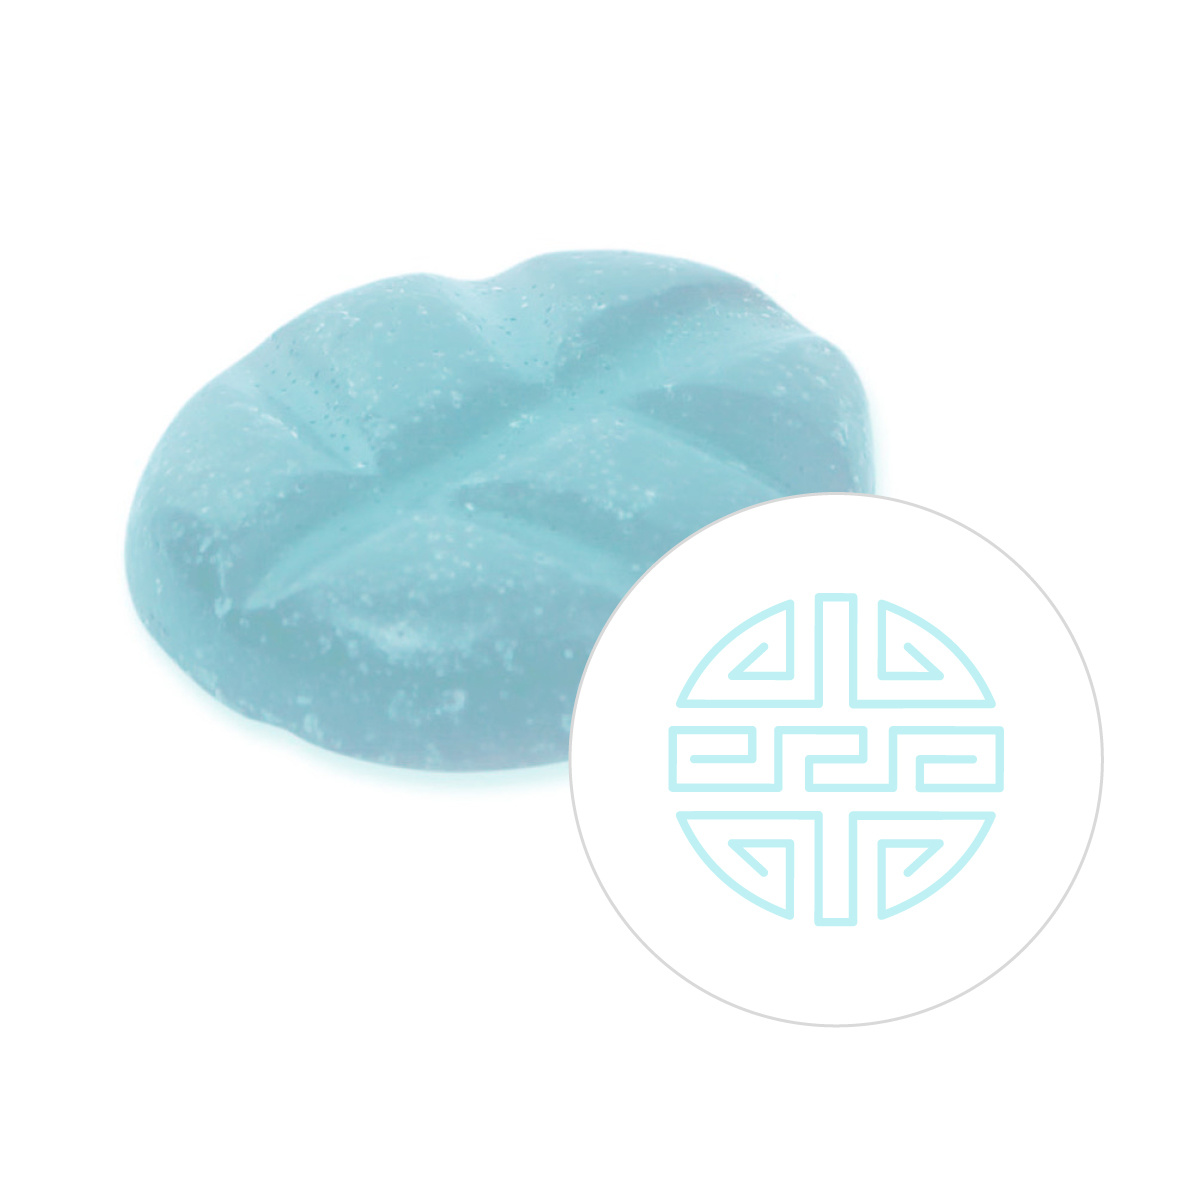 Scentchips® Relax Aroma fragrance chips ScentChips